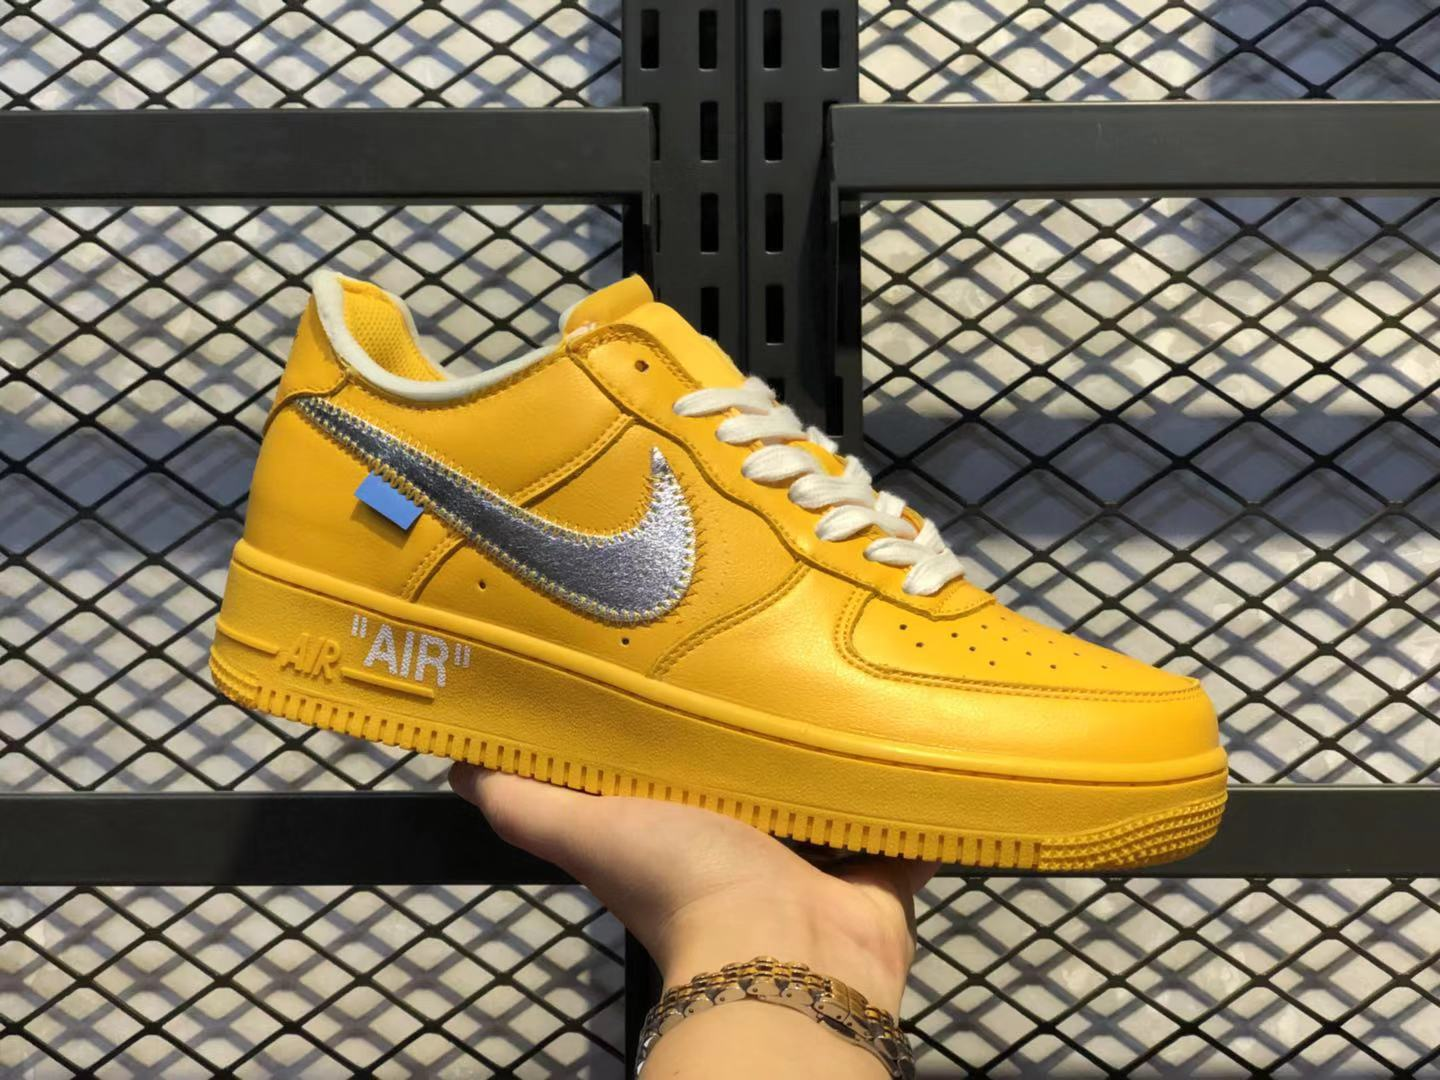 OFF-White x Nike Air Force 1 OW Yellow/Metallic Silver-White Super Deals